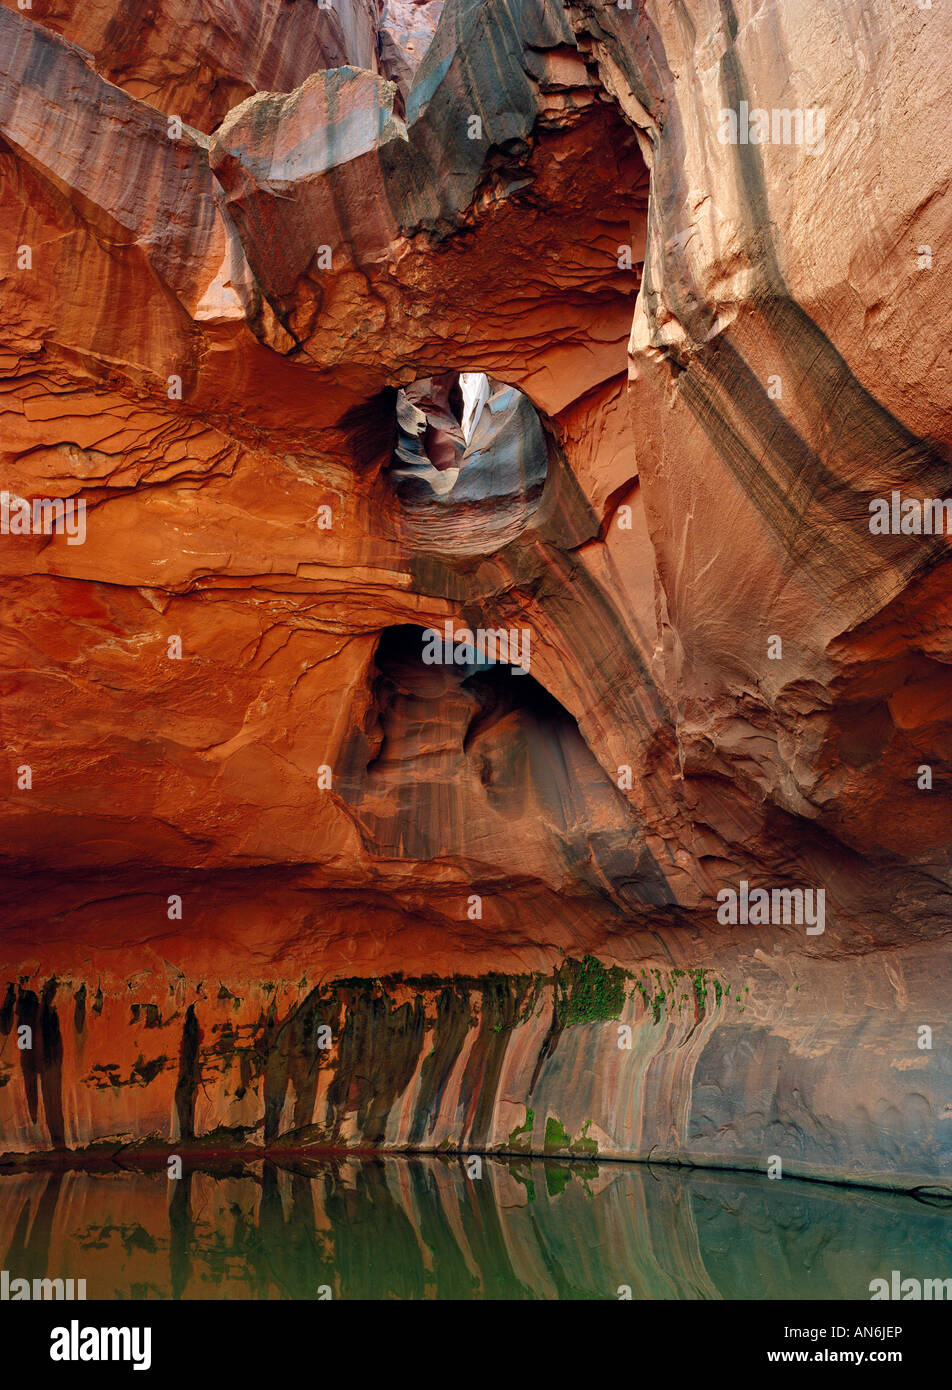 Golden Cathedral in the Neon canyon Glen Canyon National Recreation Area USA Utah - Stock Image